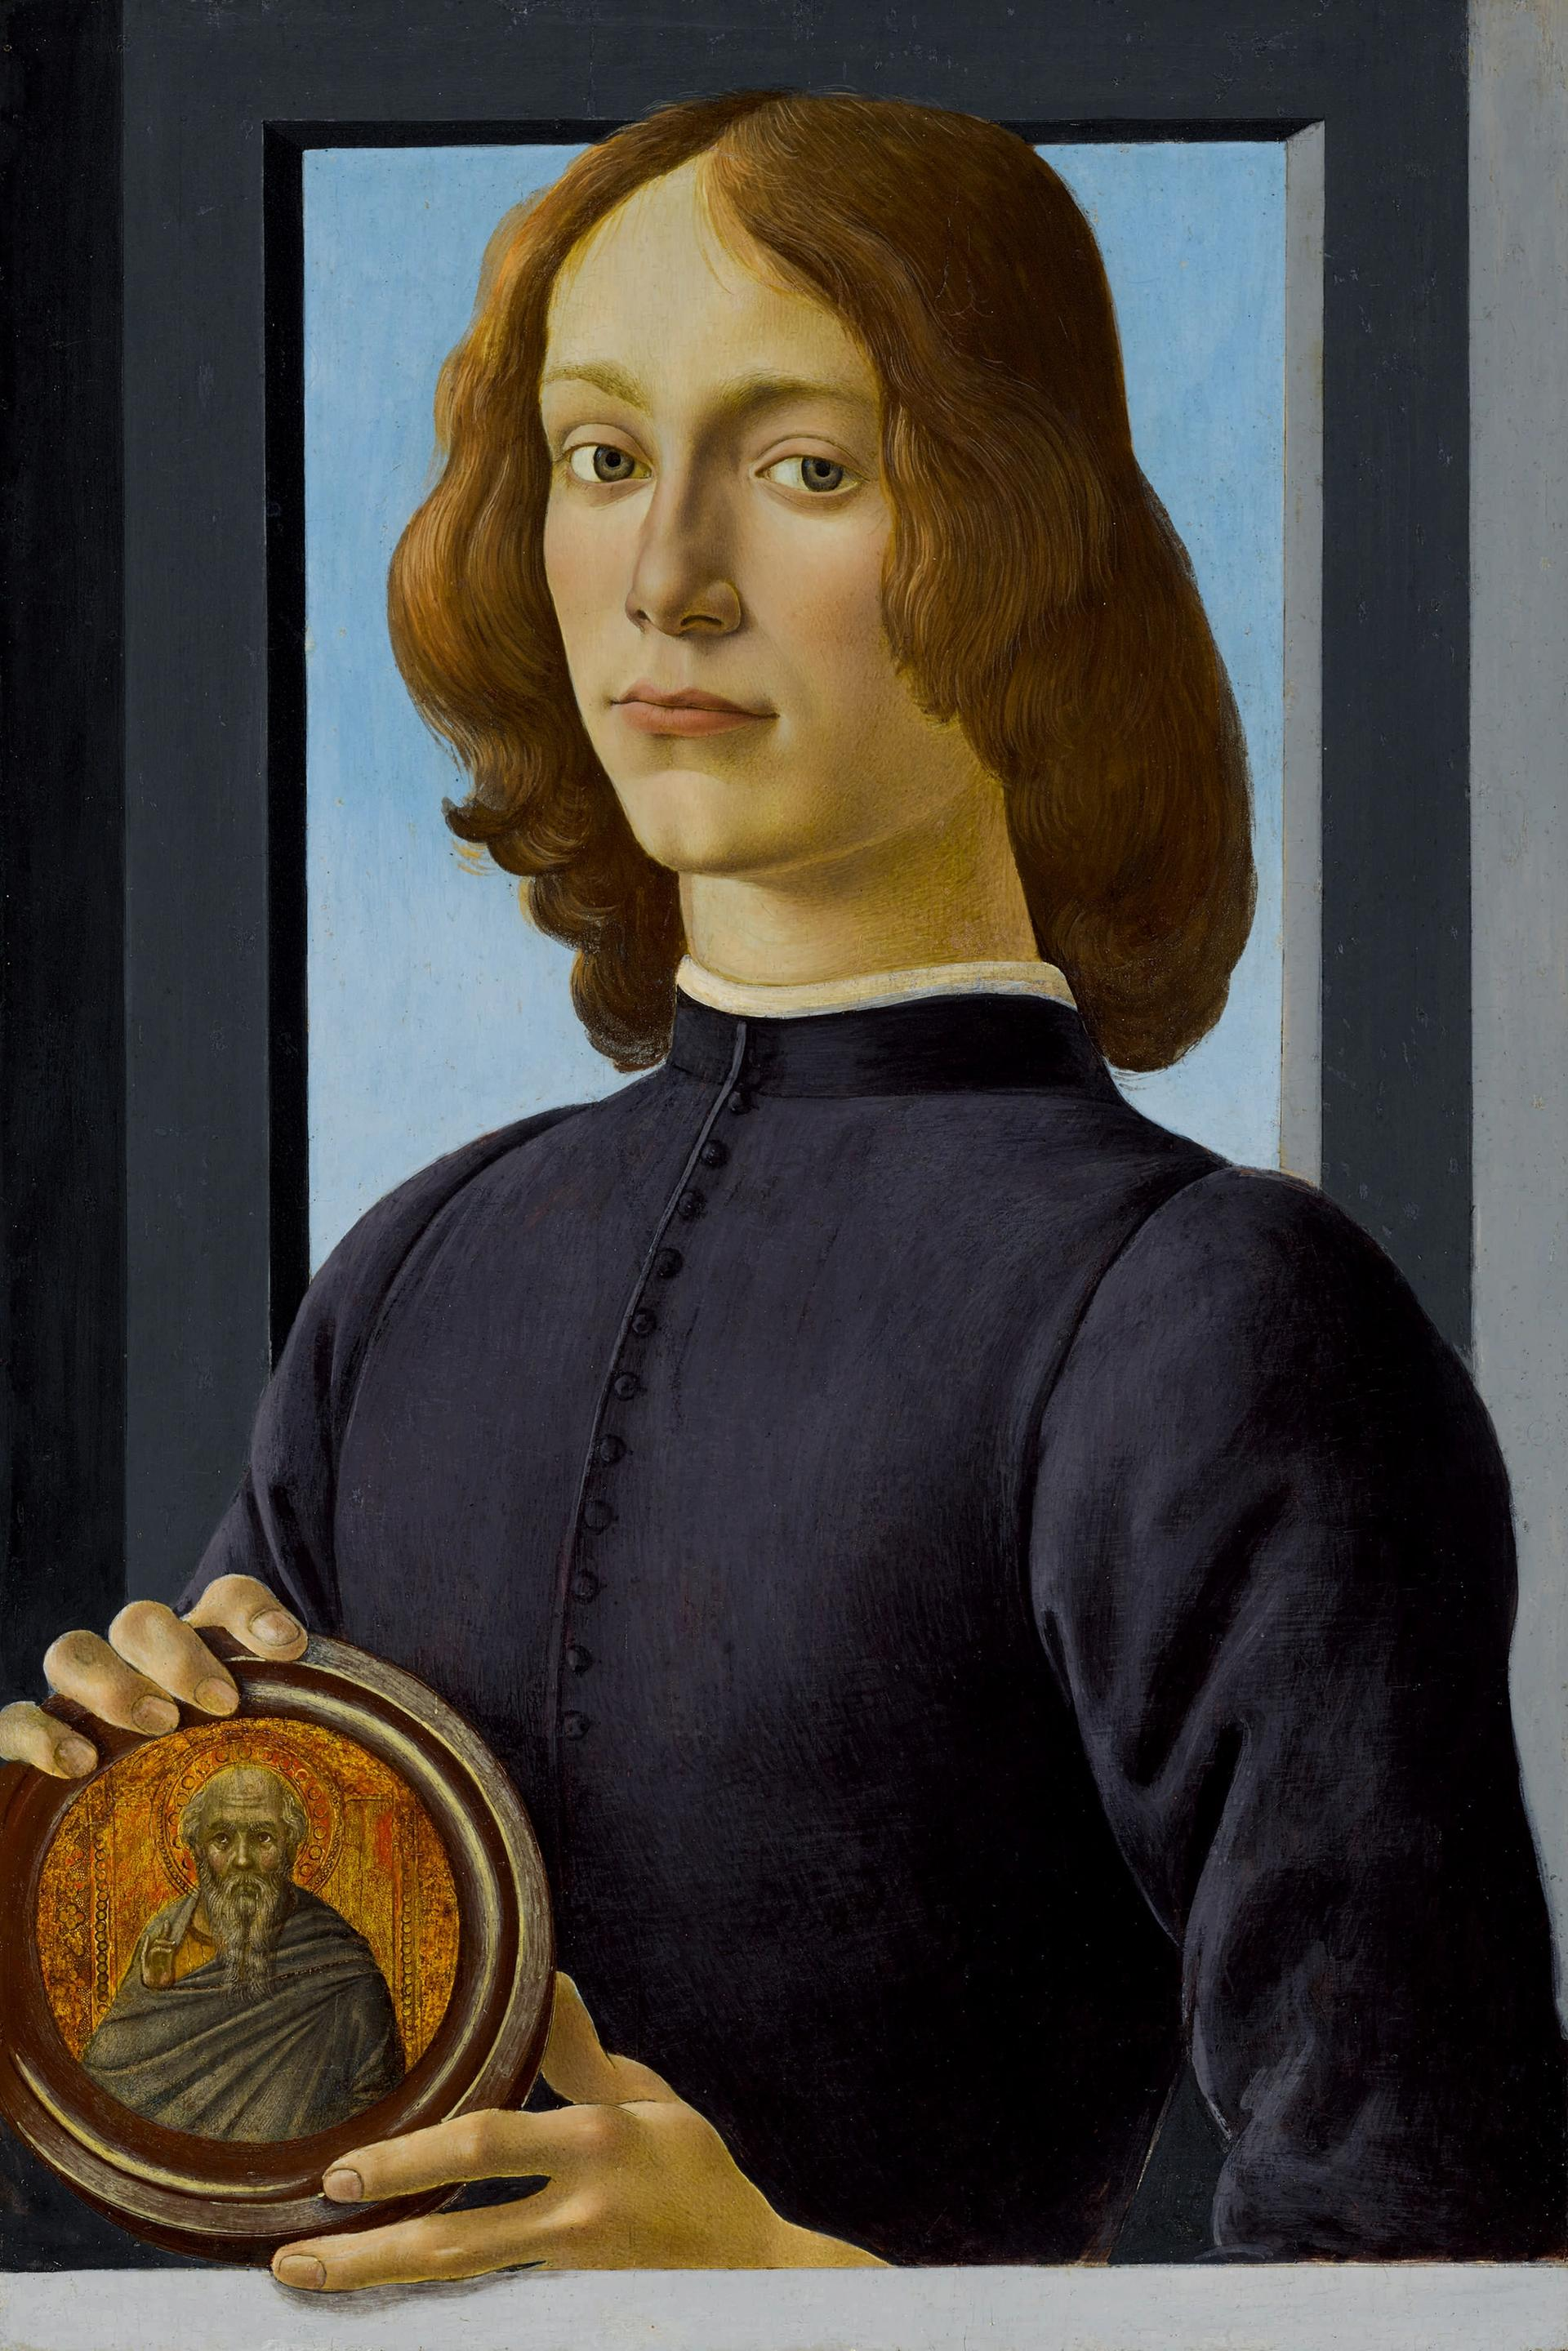 Sandro Botticelli's Young Man Holding a Roundel will be offered for $80m in January as the highlight of Sotheby's Masters Week series of sales in New York. Courtesy of Sotheby's